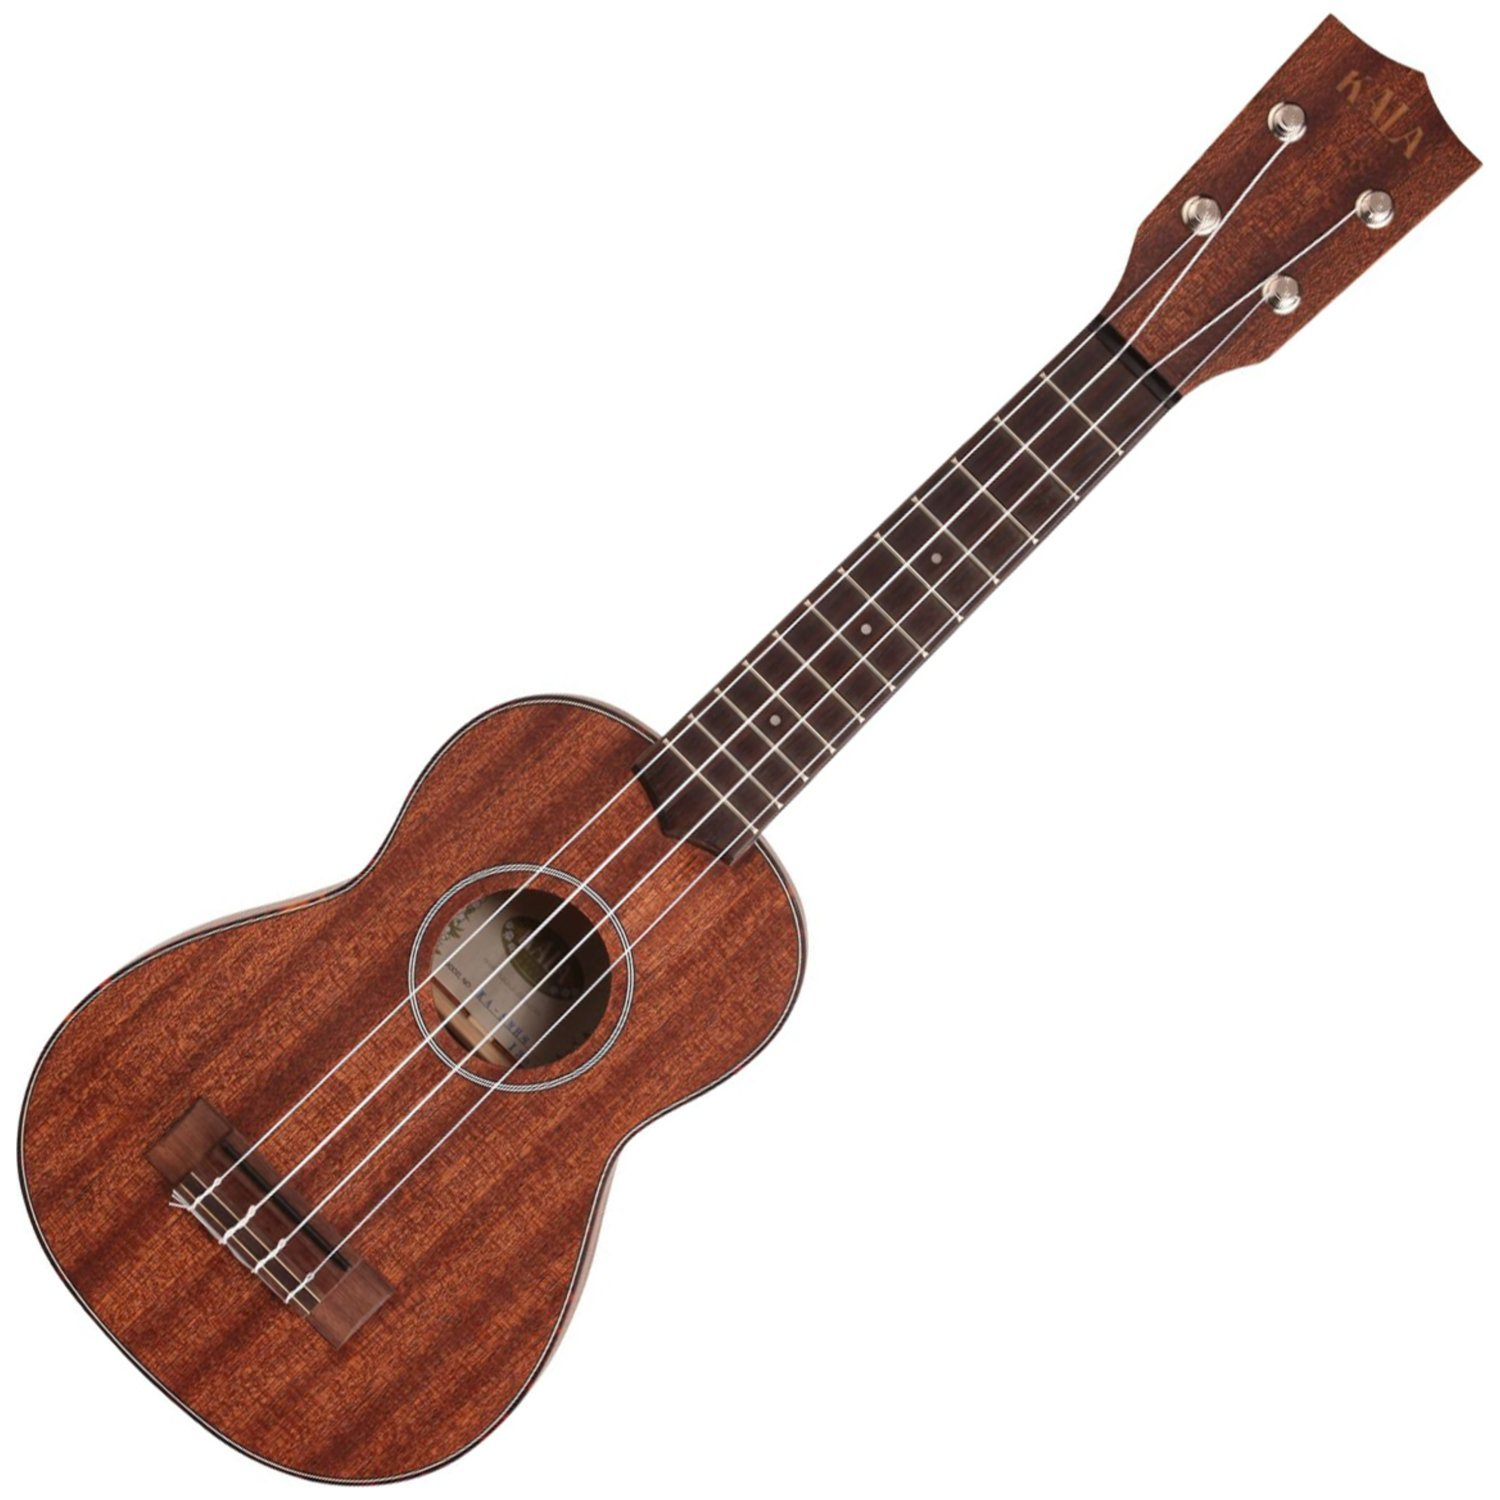 12 ukuleles to buy for beginners this christmas solid wood ukuleles command a higher price but have a more complex fuller and louder sound than a plastic or laminate wood ukulele its been my experience hexwebz Image collections